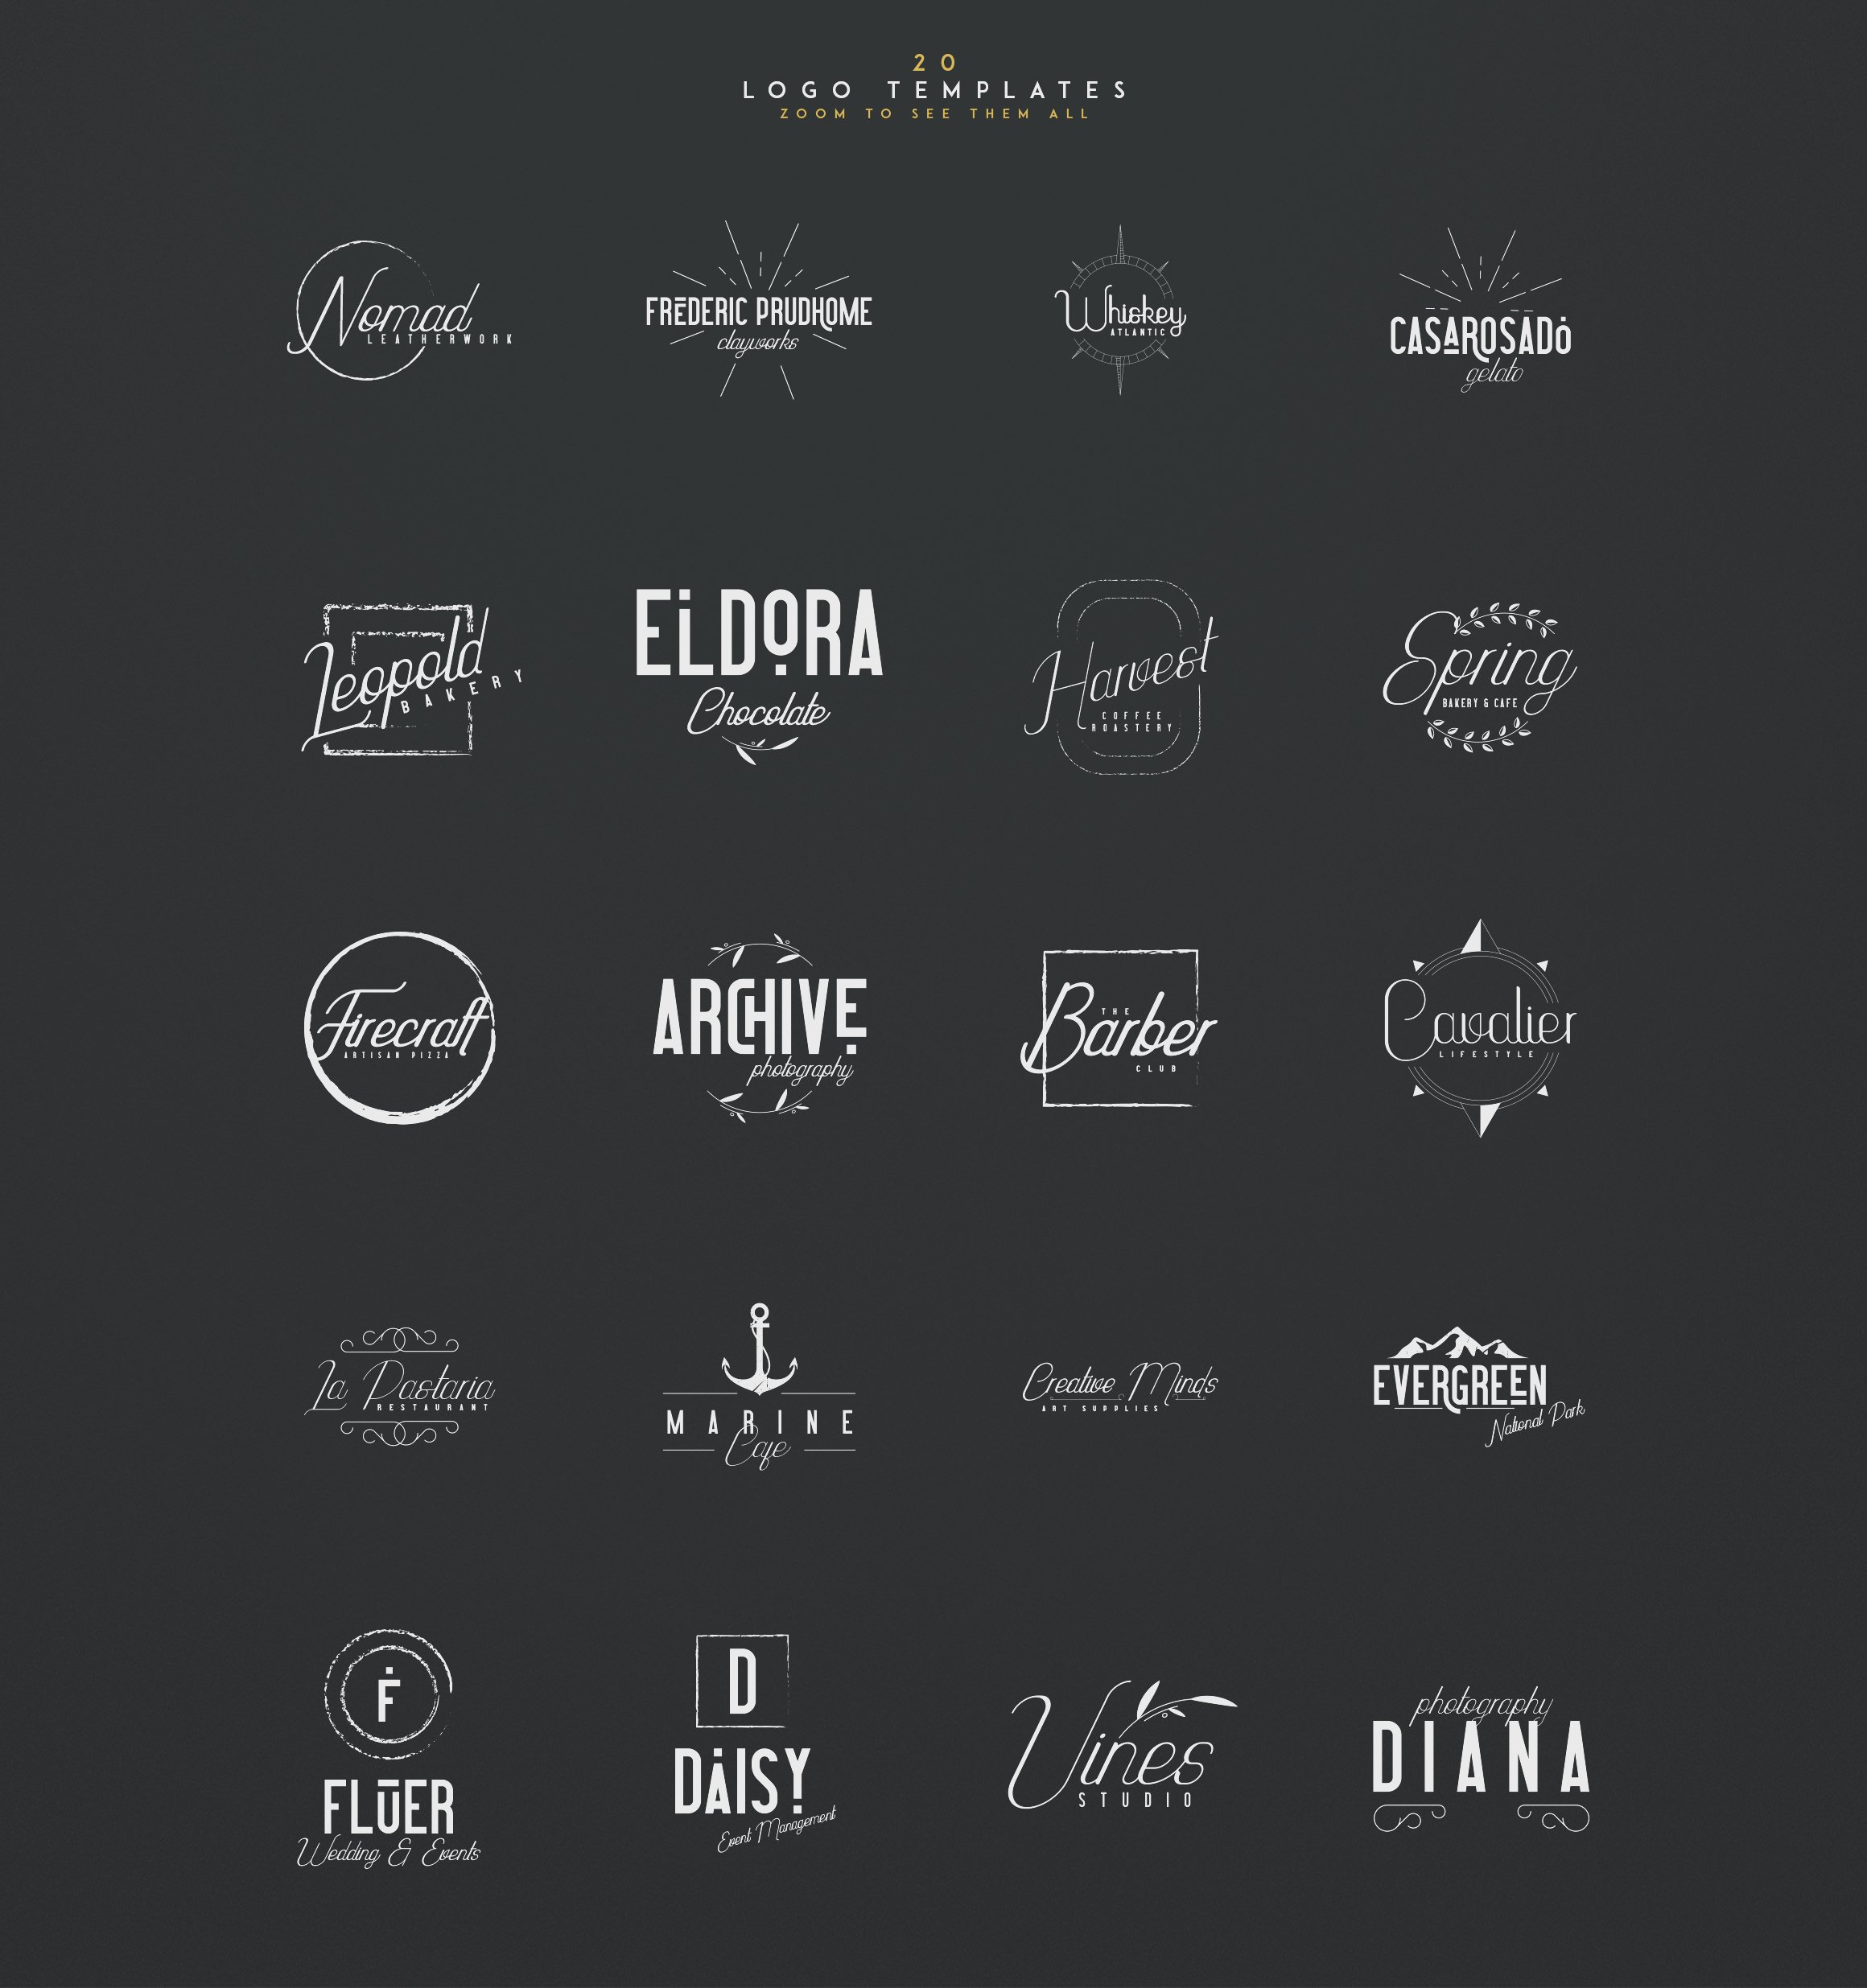 Highway Contraband Vintage Script Font Bundle: Font Duo + 20 Logo Templates + 44 Vector Elements - 8